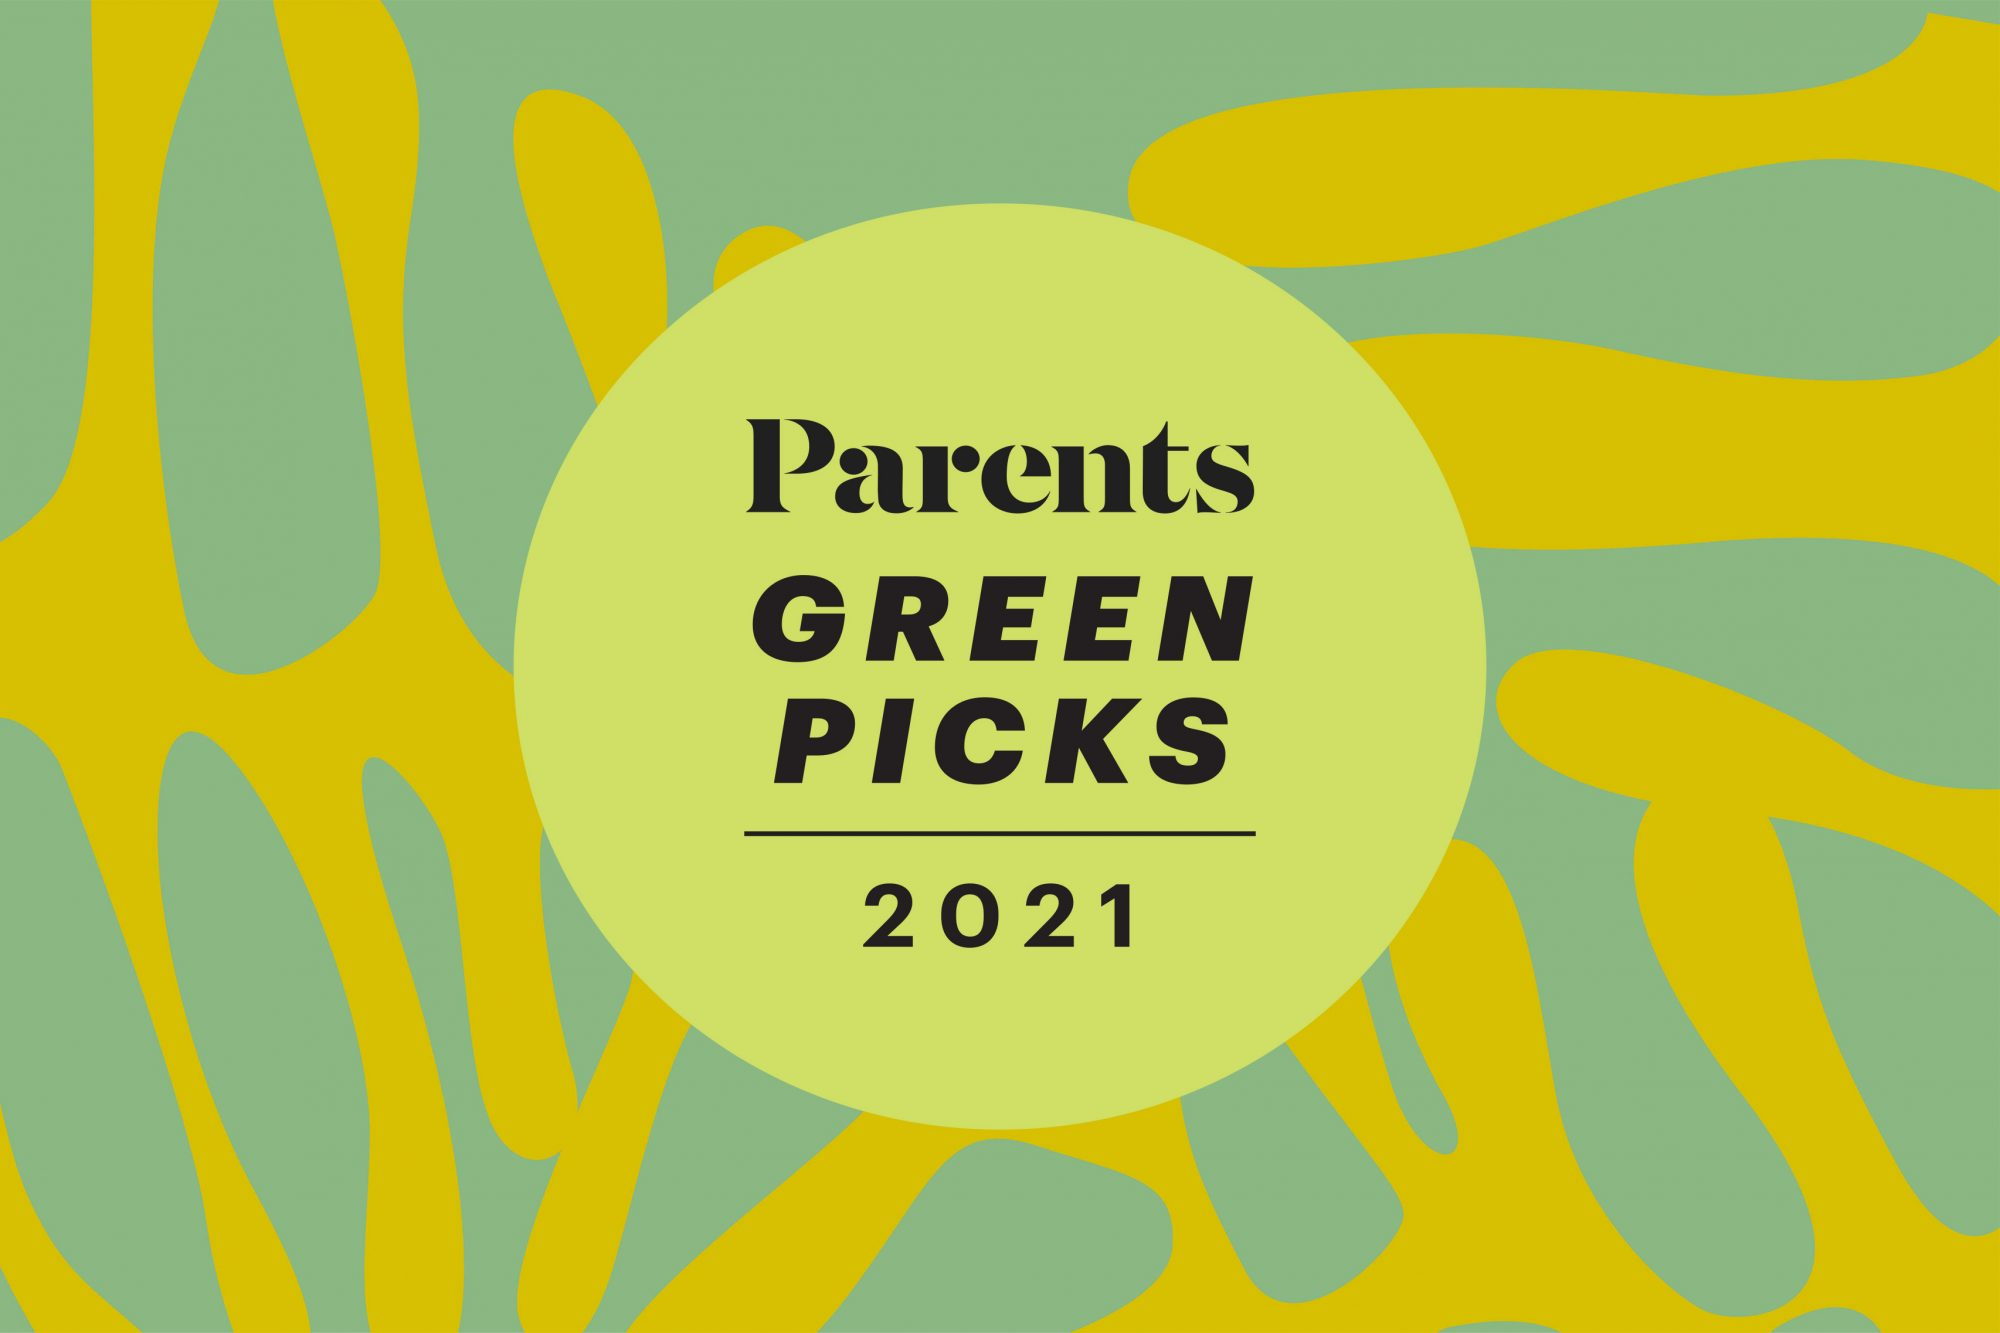 An image of the Parents Green Picks seal on a colorful background.